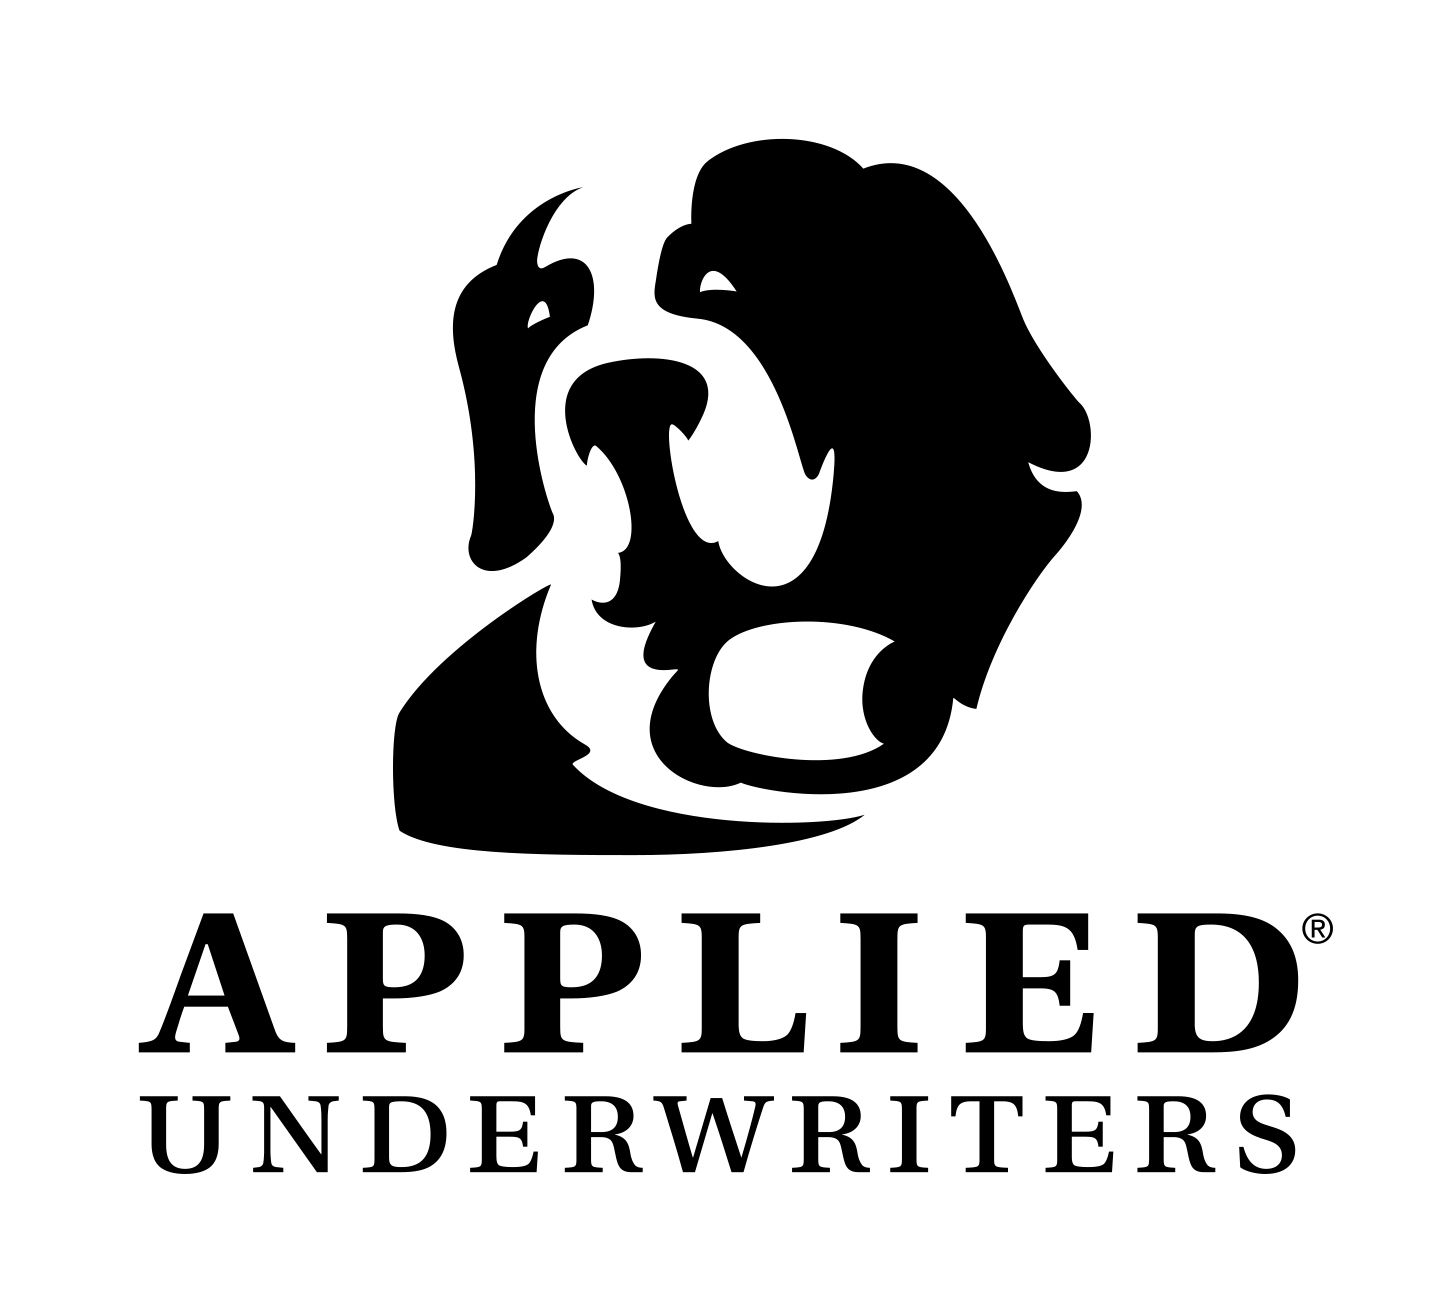 Applied underwriters workers compensation insurance